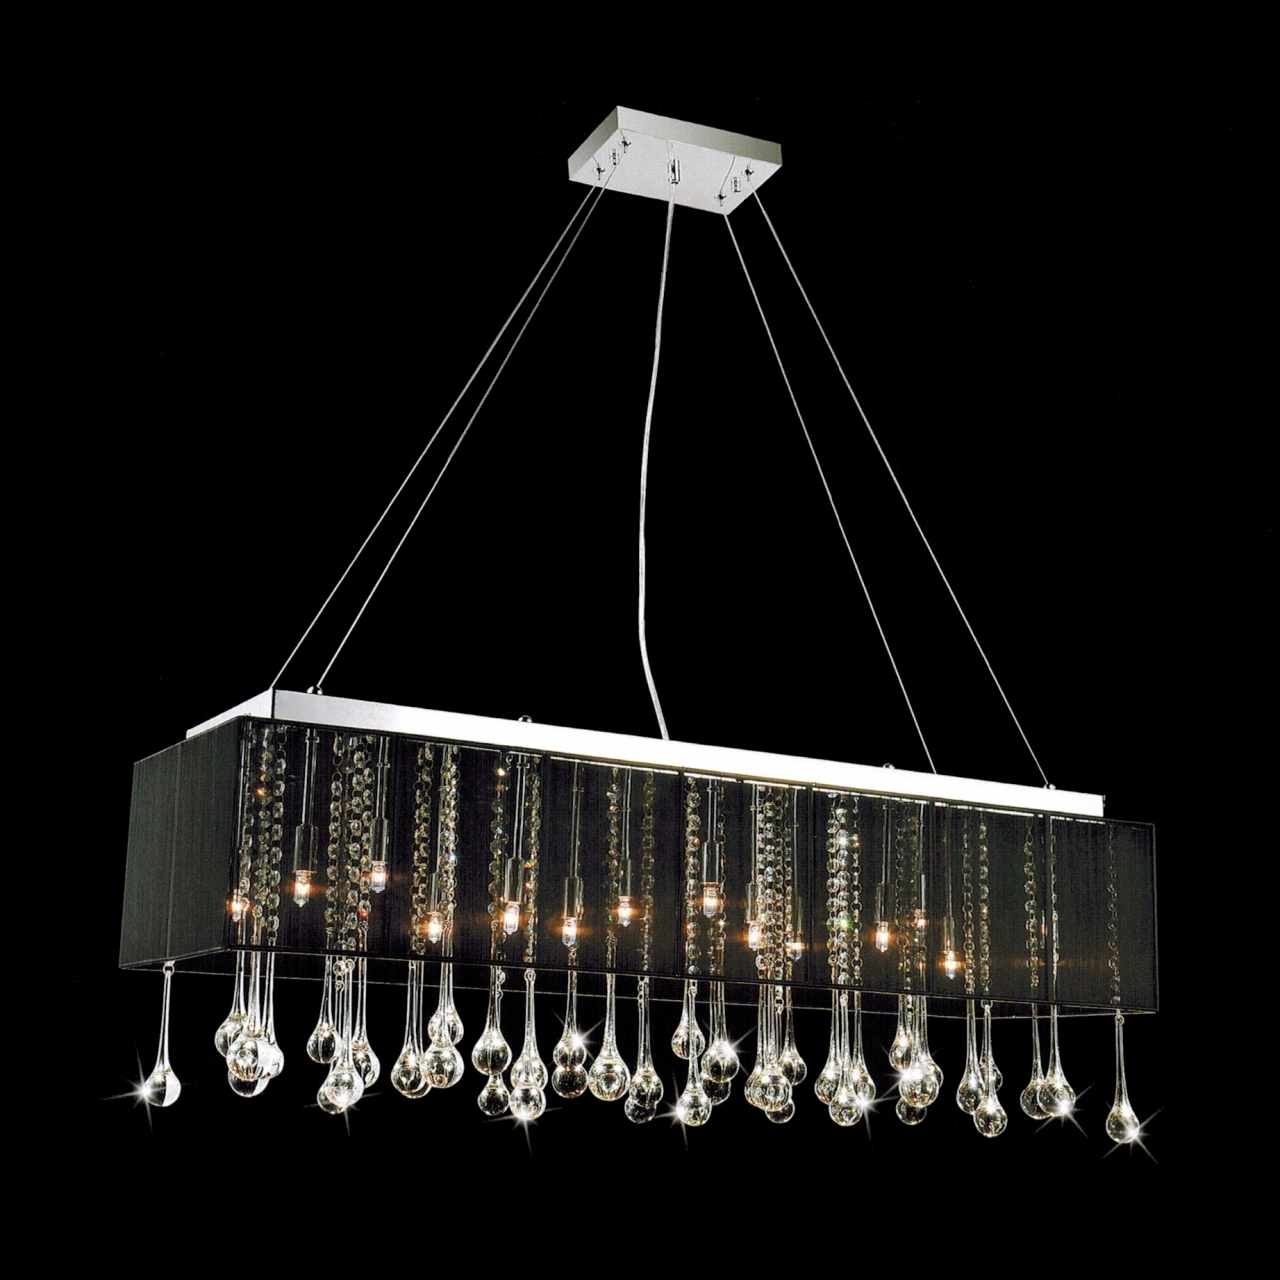 Modern Black Chandelier Pertaining To Black Contemporary Chandelier (#12 of 12)